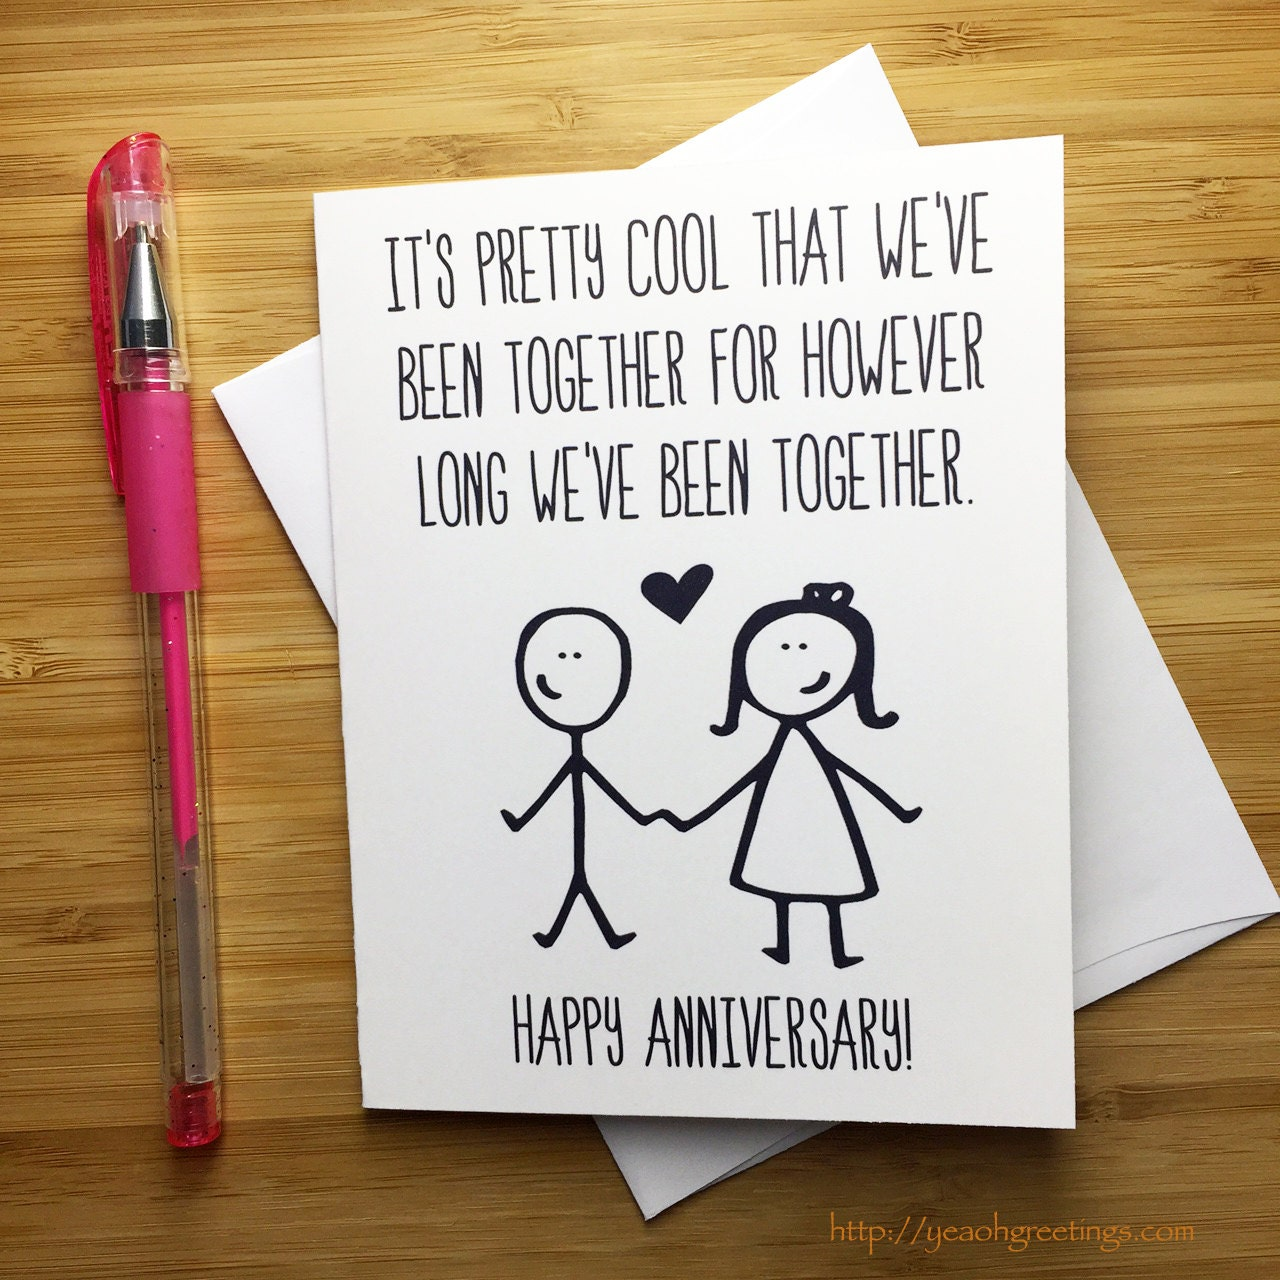 Unusual anniversary card templates gallery entry level resume wedding anniversary ecards for husband from wife picture ideas kristyandbryce Images